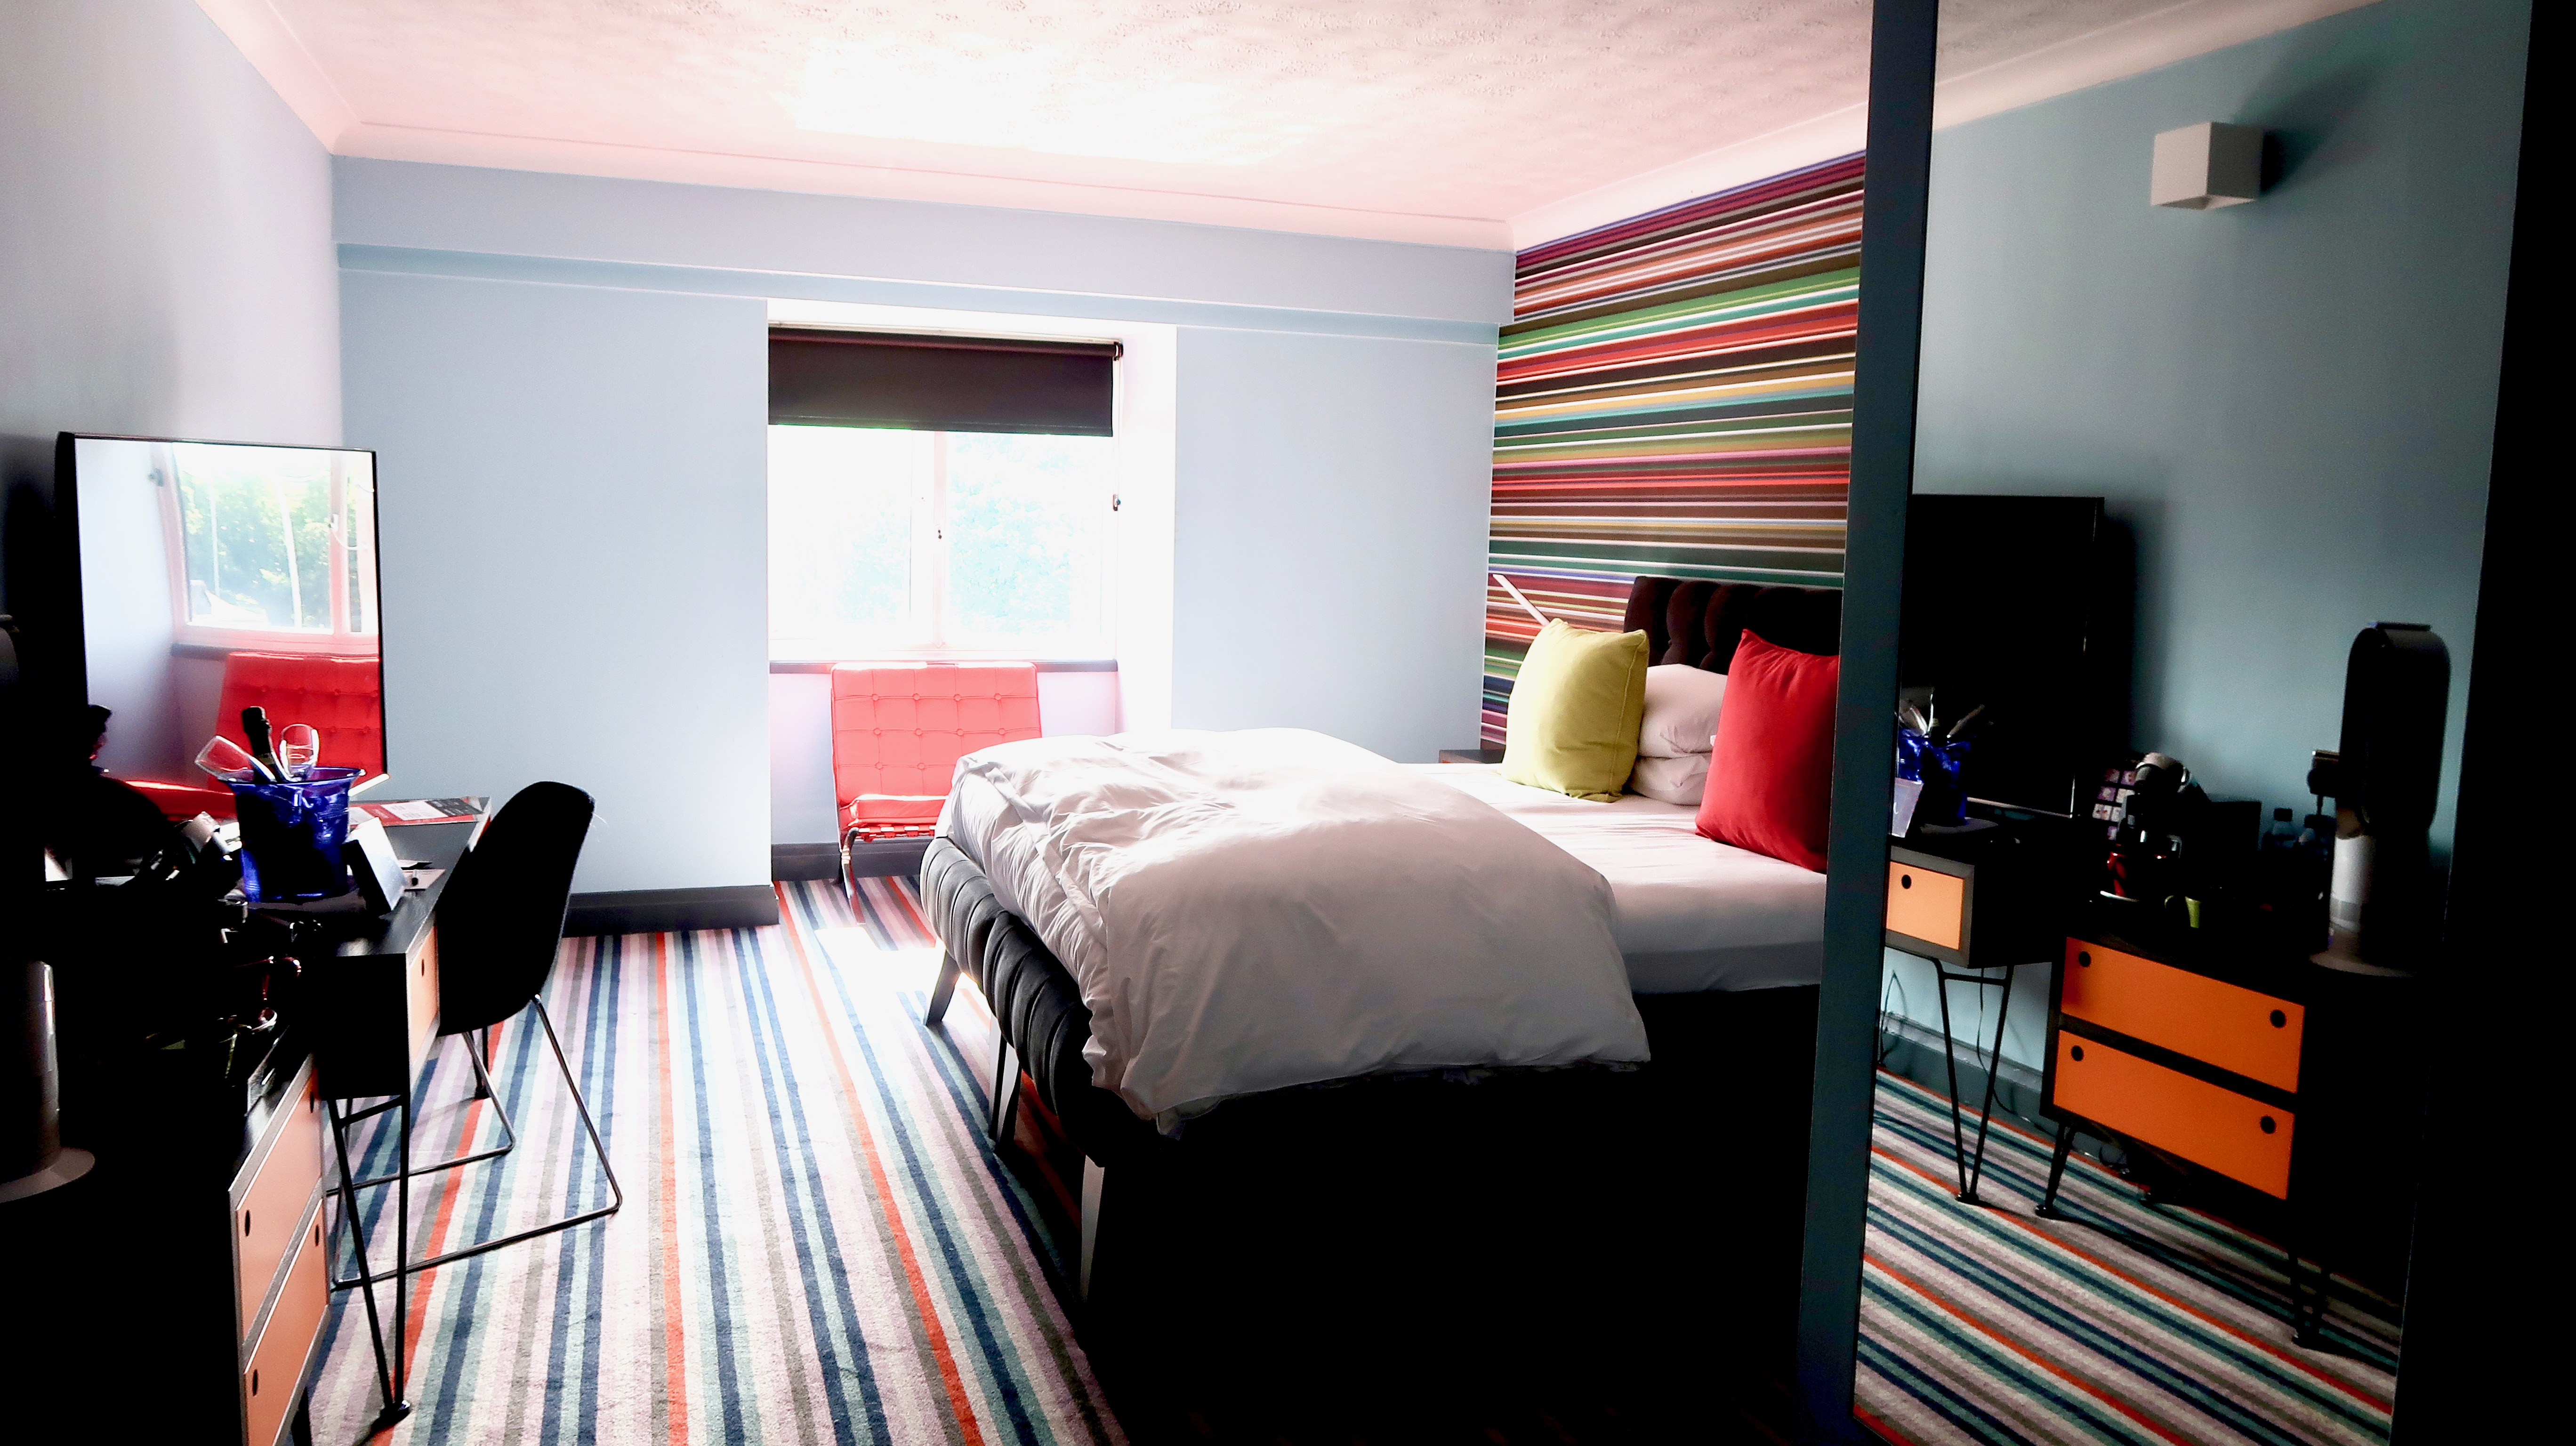 The Village Hotel Tribute Tour | Hotels in The Wirral, Liverpool & Chester | Elle Blonde Luxury Lifestyle Destination Blog